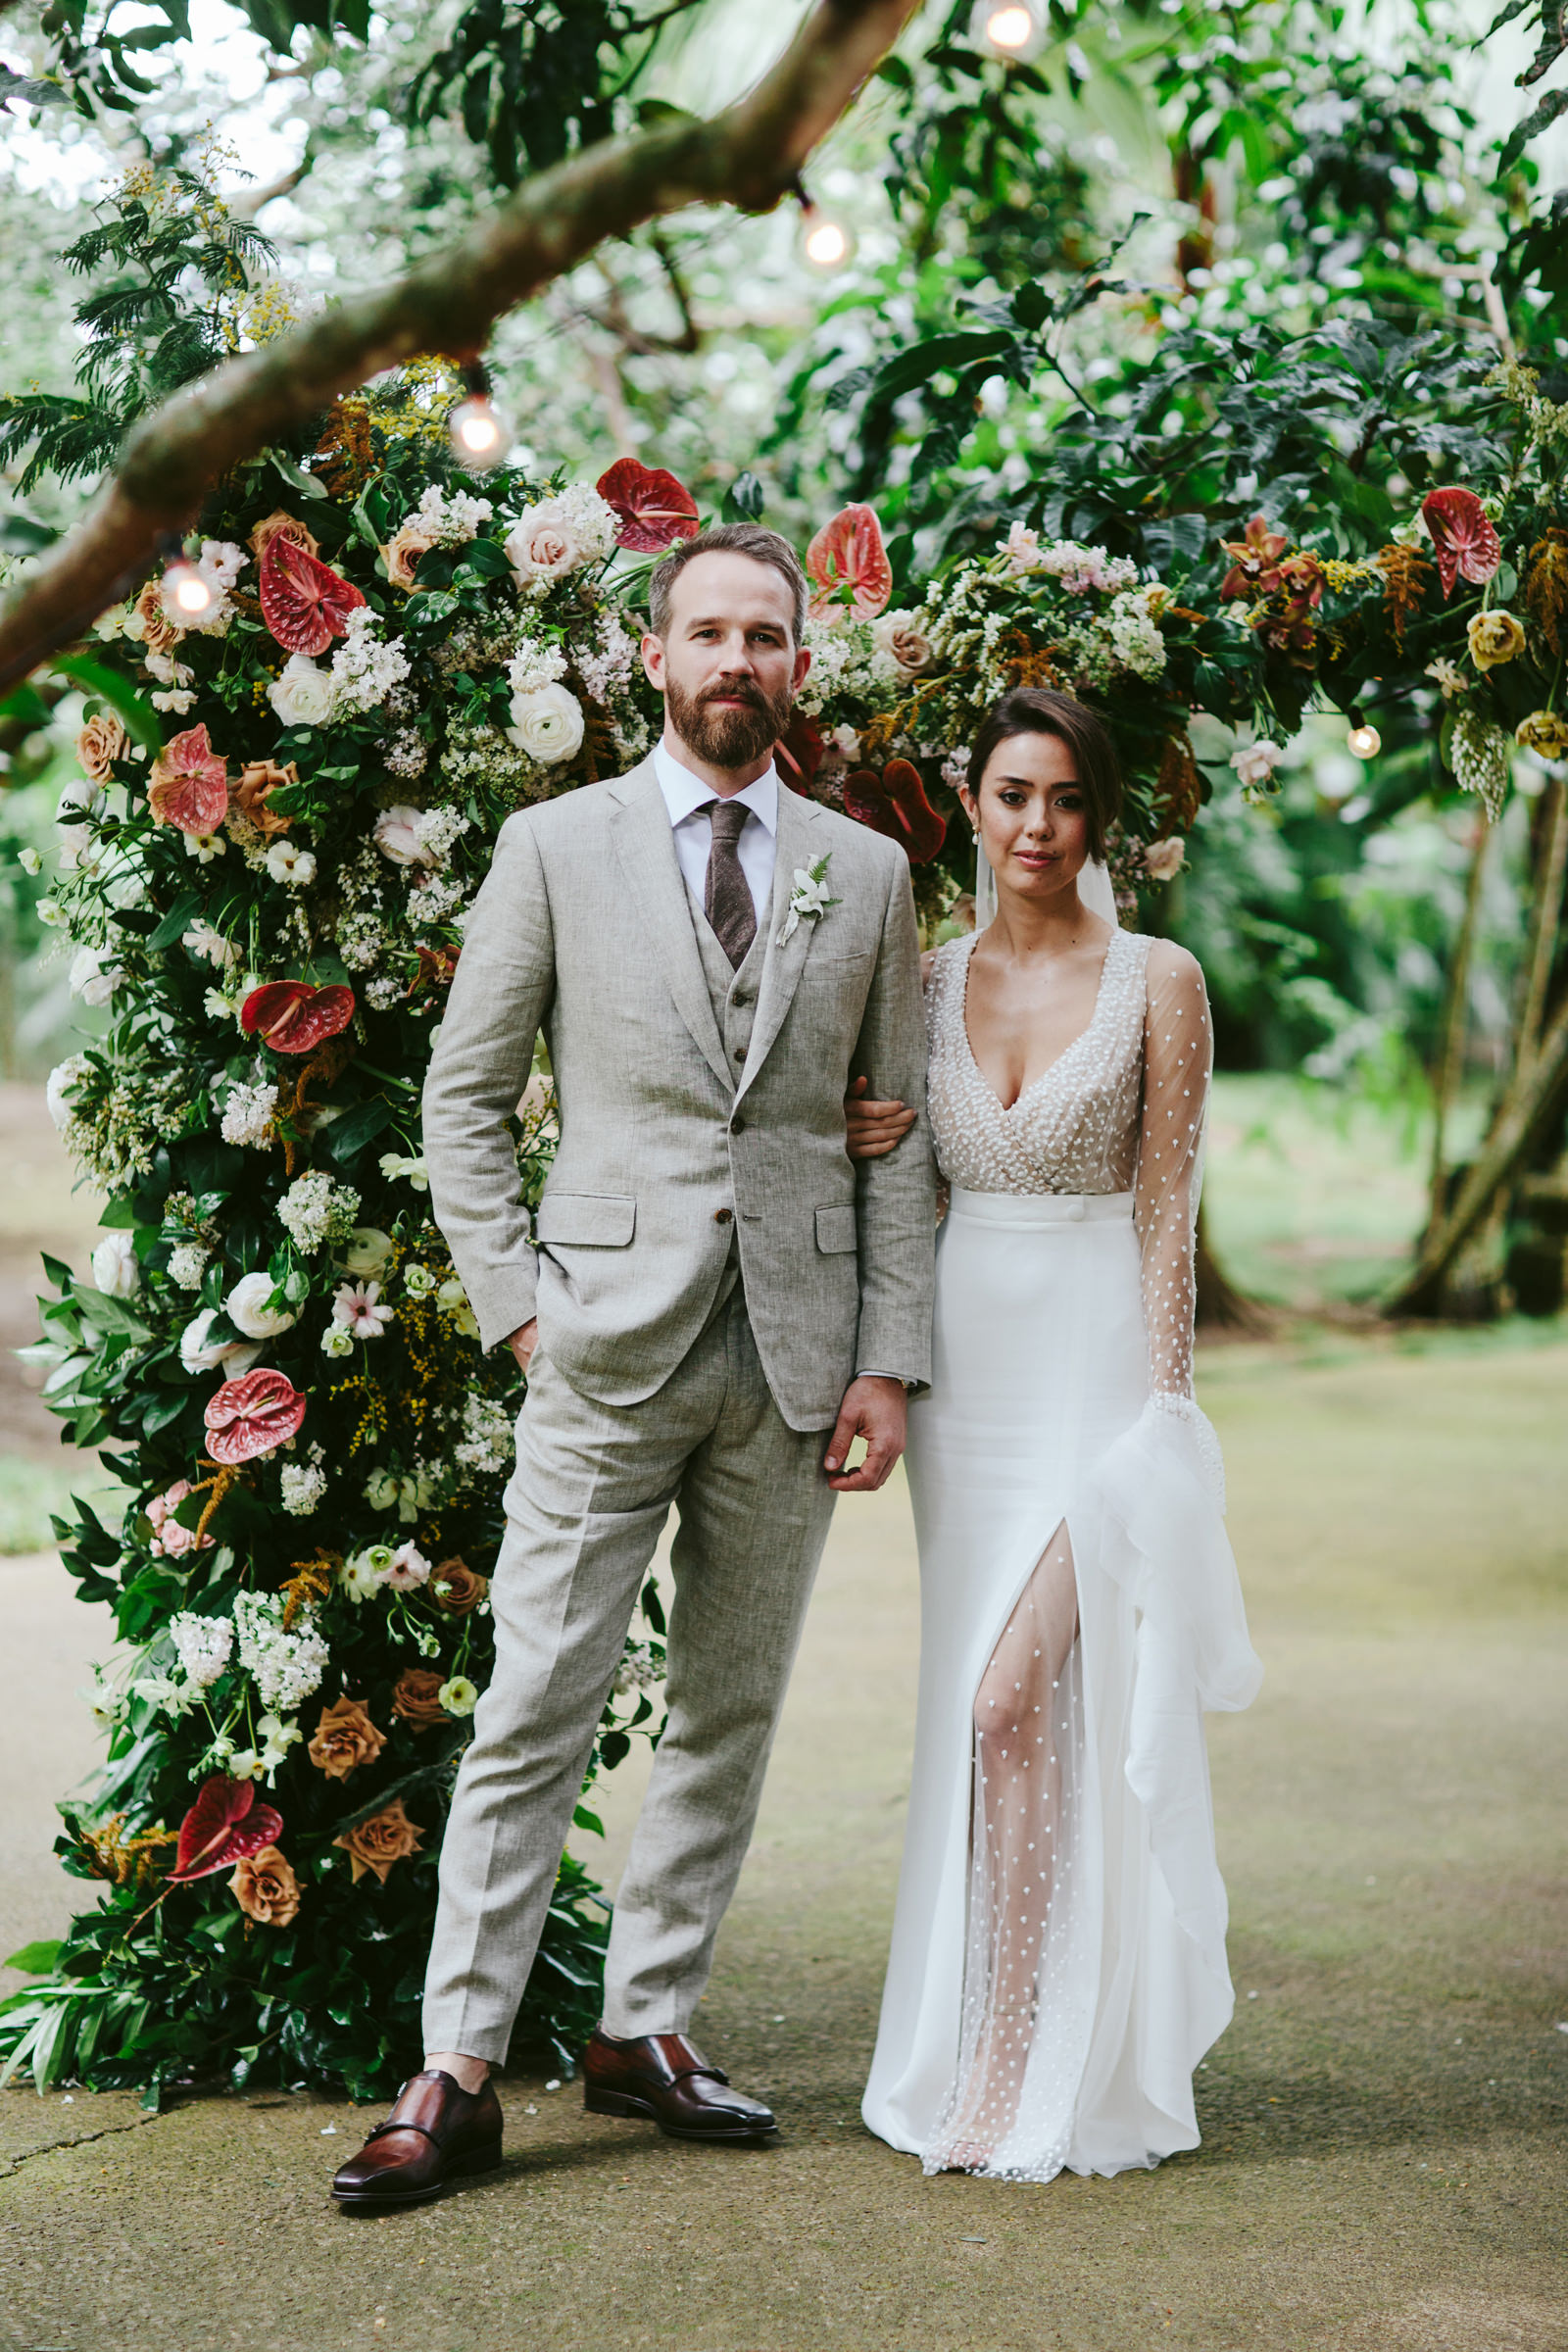 Bride and groom portrait in front of beautiful arbor - photo by Melia Lucida